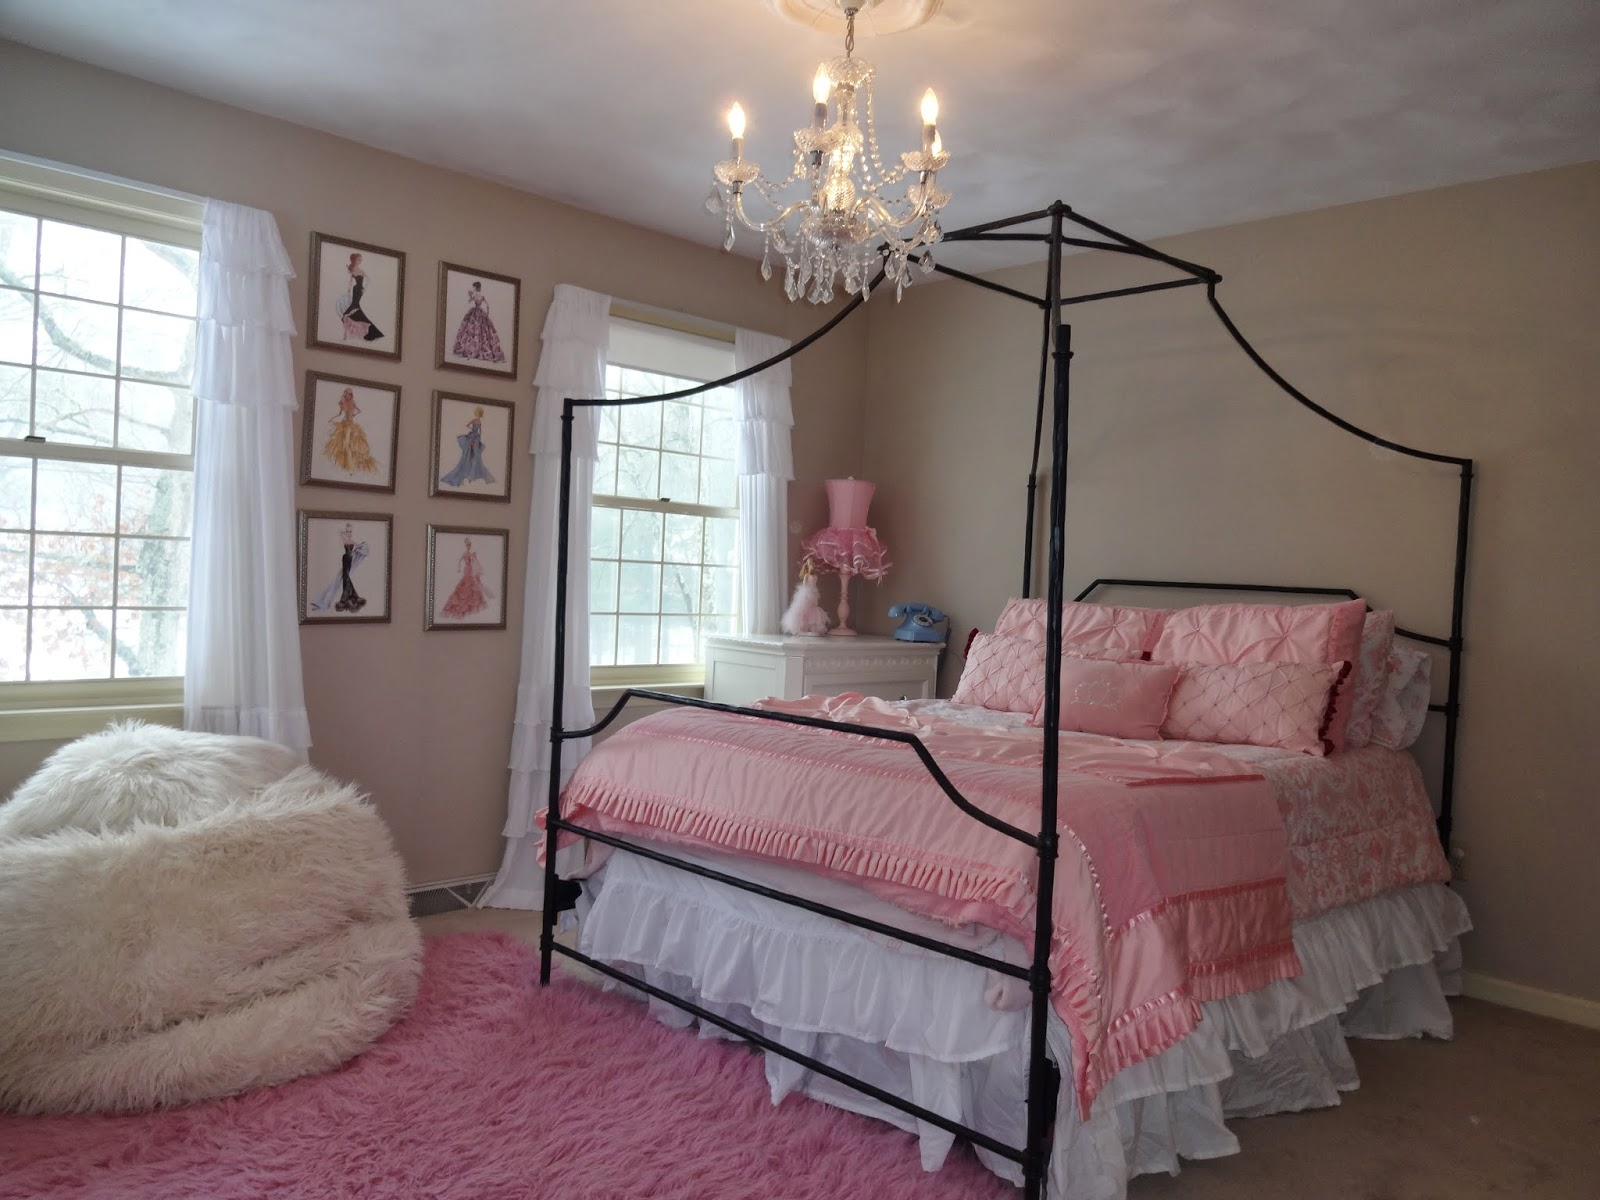 Barbie bedding pottery barn - Bed Pottery Barn Teen Maison Bed Bedding Circo Princess Bedding Bed Skirt Target Pottery Barn Furliciuos Bean Bag Barbie Artwork Diy Instructions Here